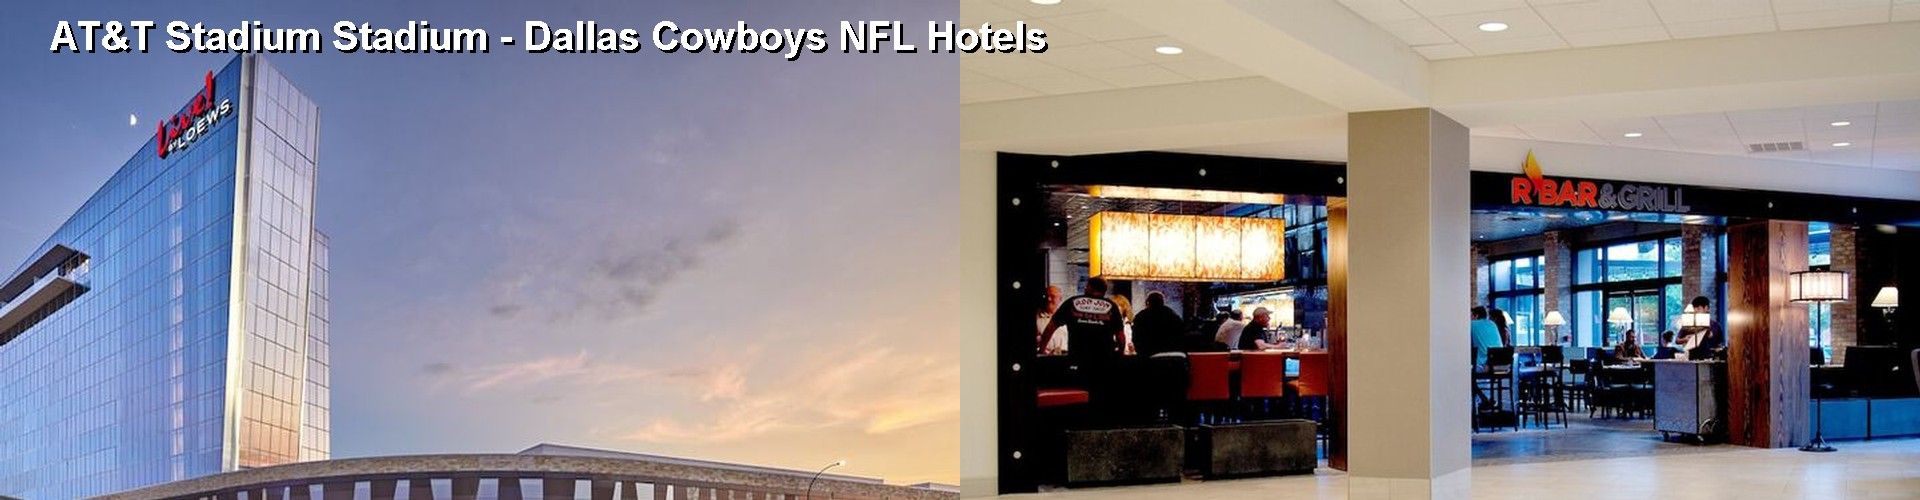 $43+ Hotels Near AT&T Stadium Stadium Dallas Cowboys NFL in